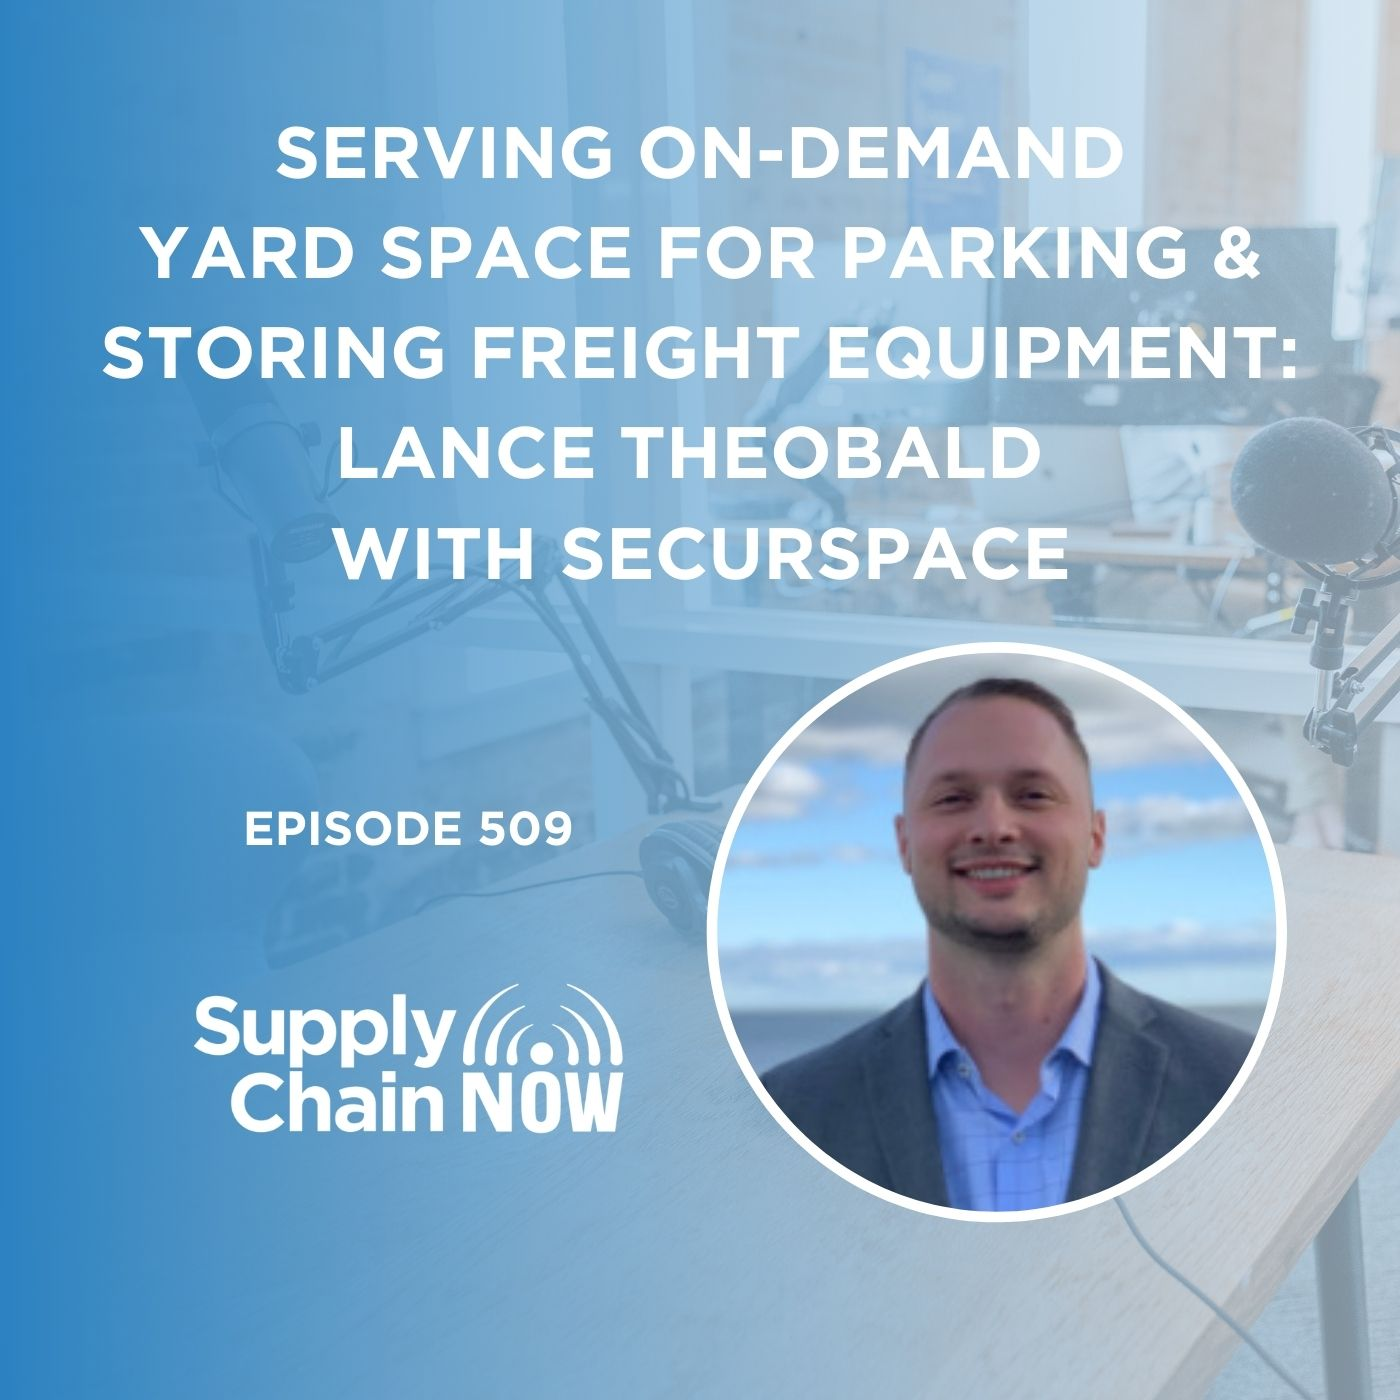 Serving On-Demand Yard Space for Parking & Storing Freight Equipment: Lance Theobald with SecurSpace